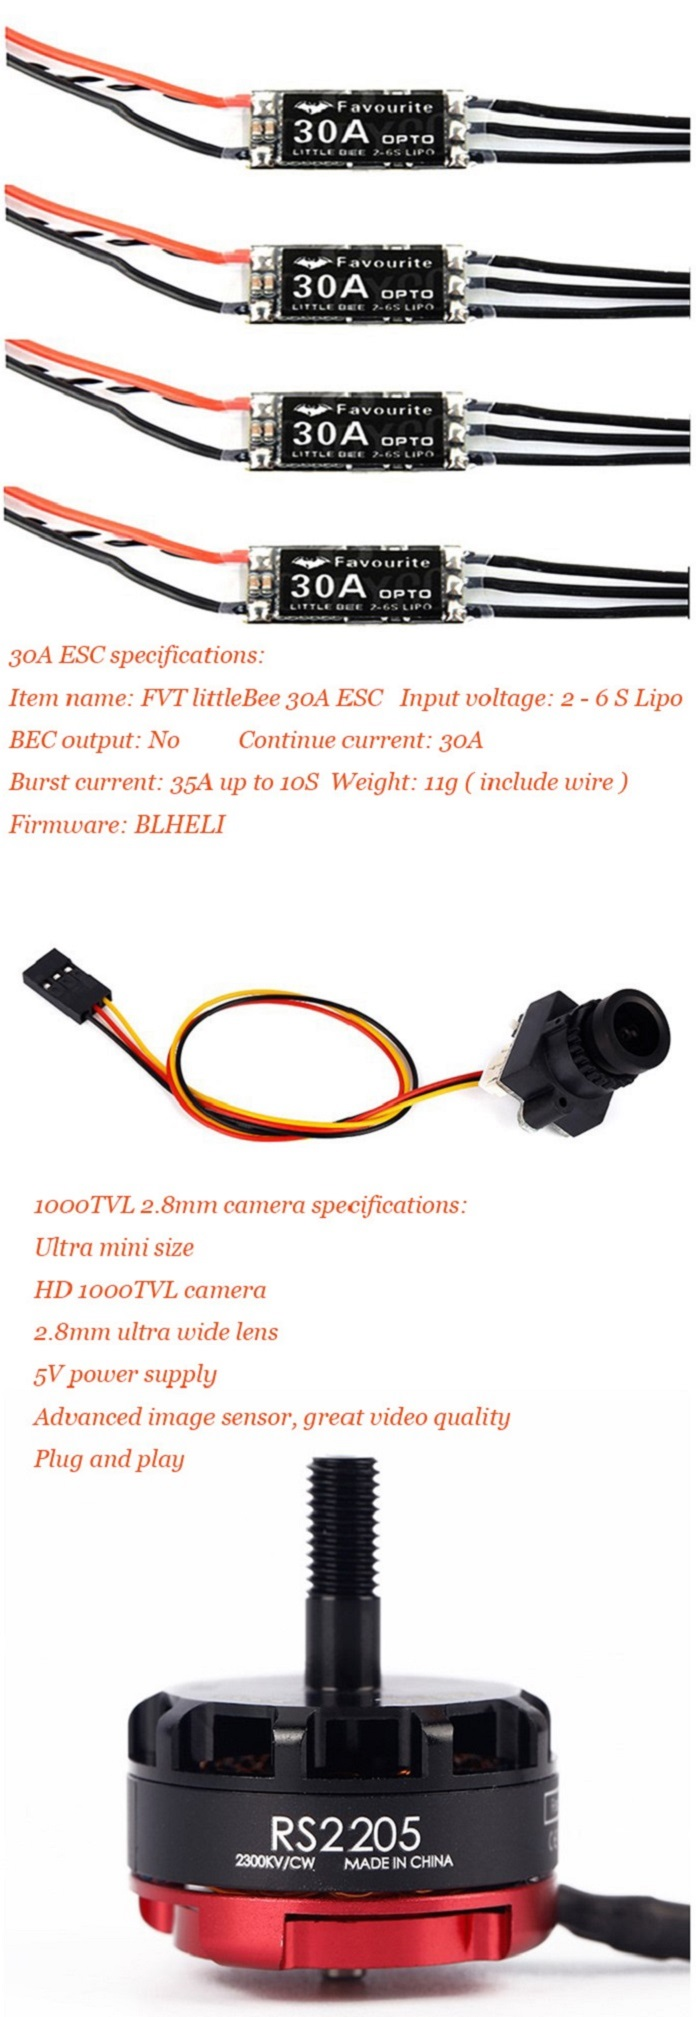 GB190 Carbon Fiber 190mm Wheelbase Multirotor DIY Frame Kit Racing Drone 30A ESC F3 10DOF Flight Controller